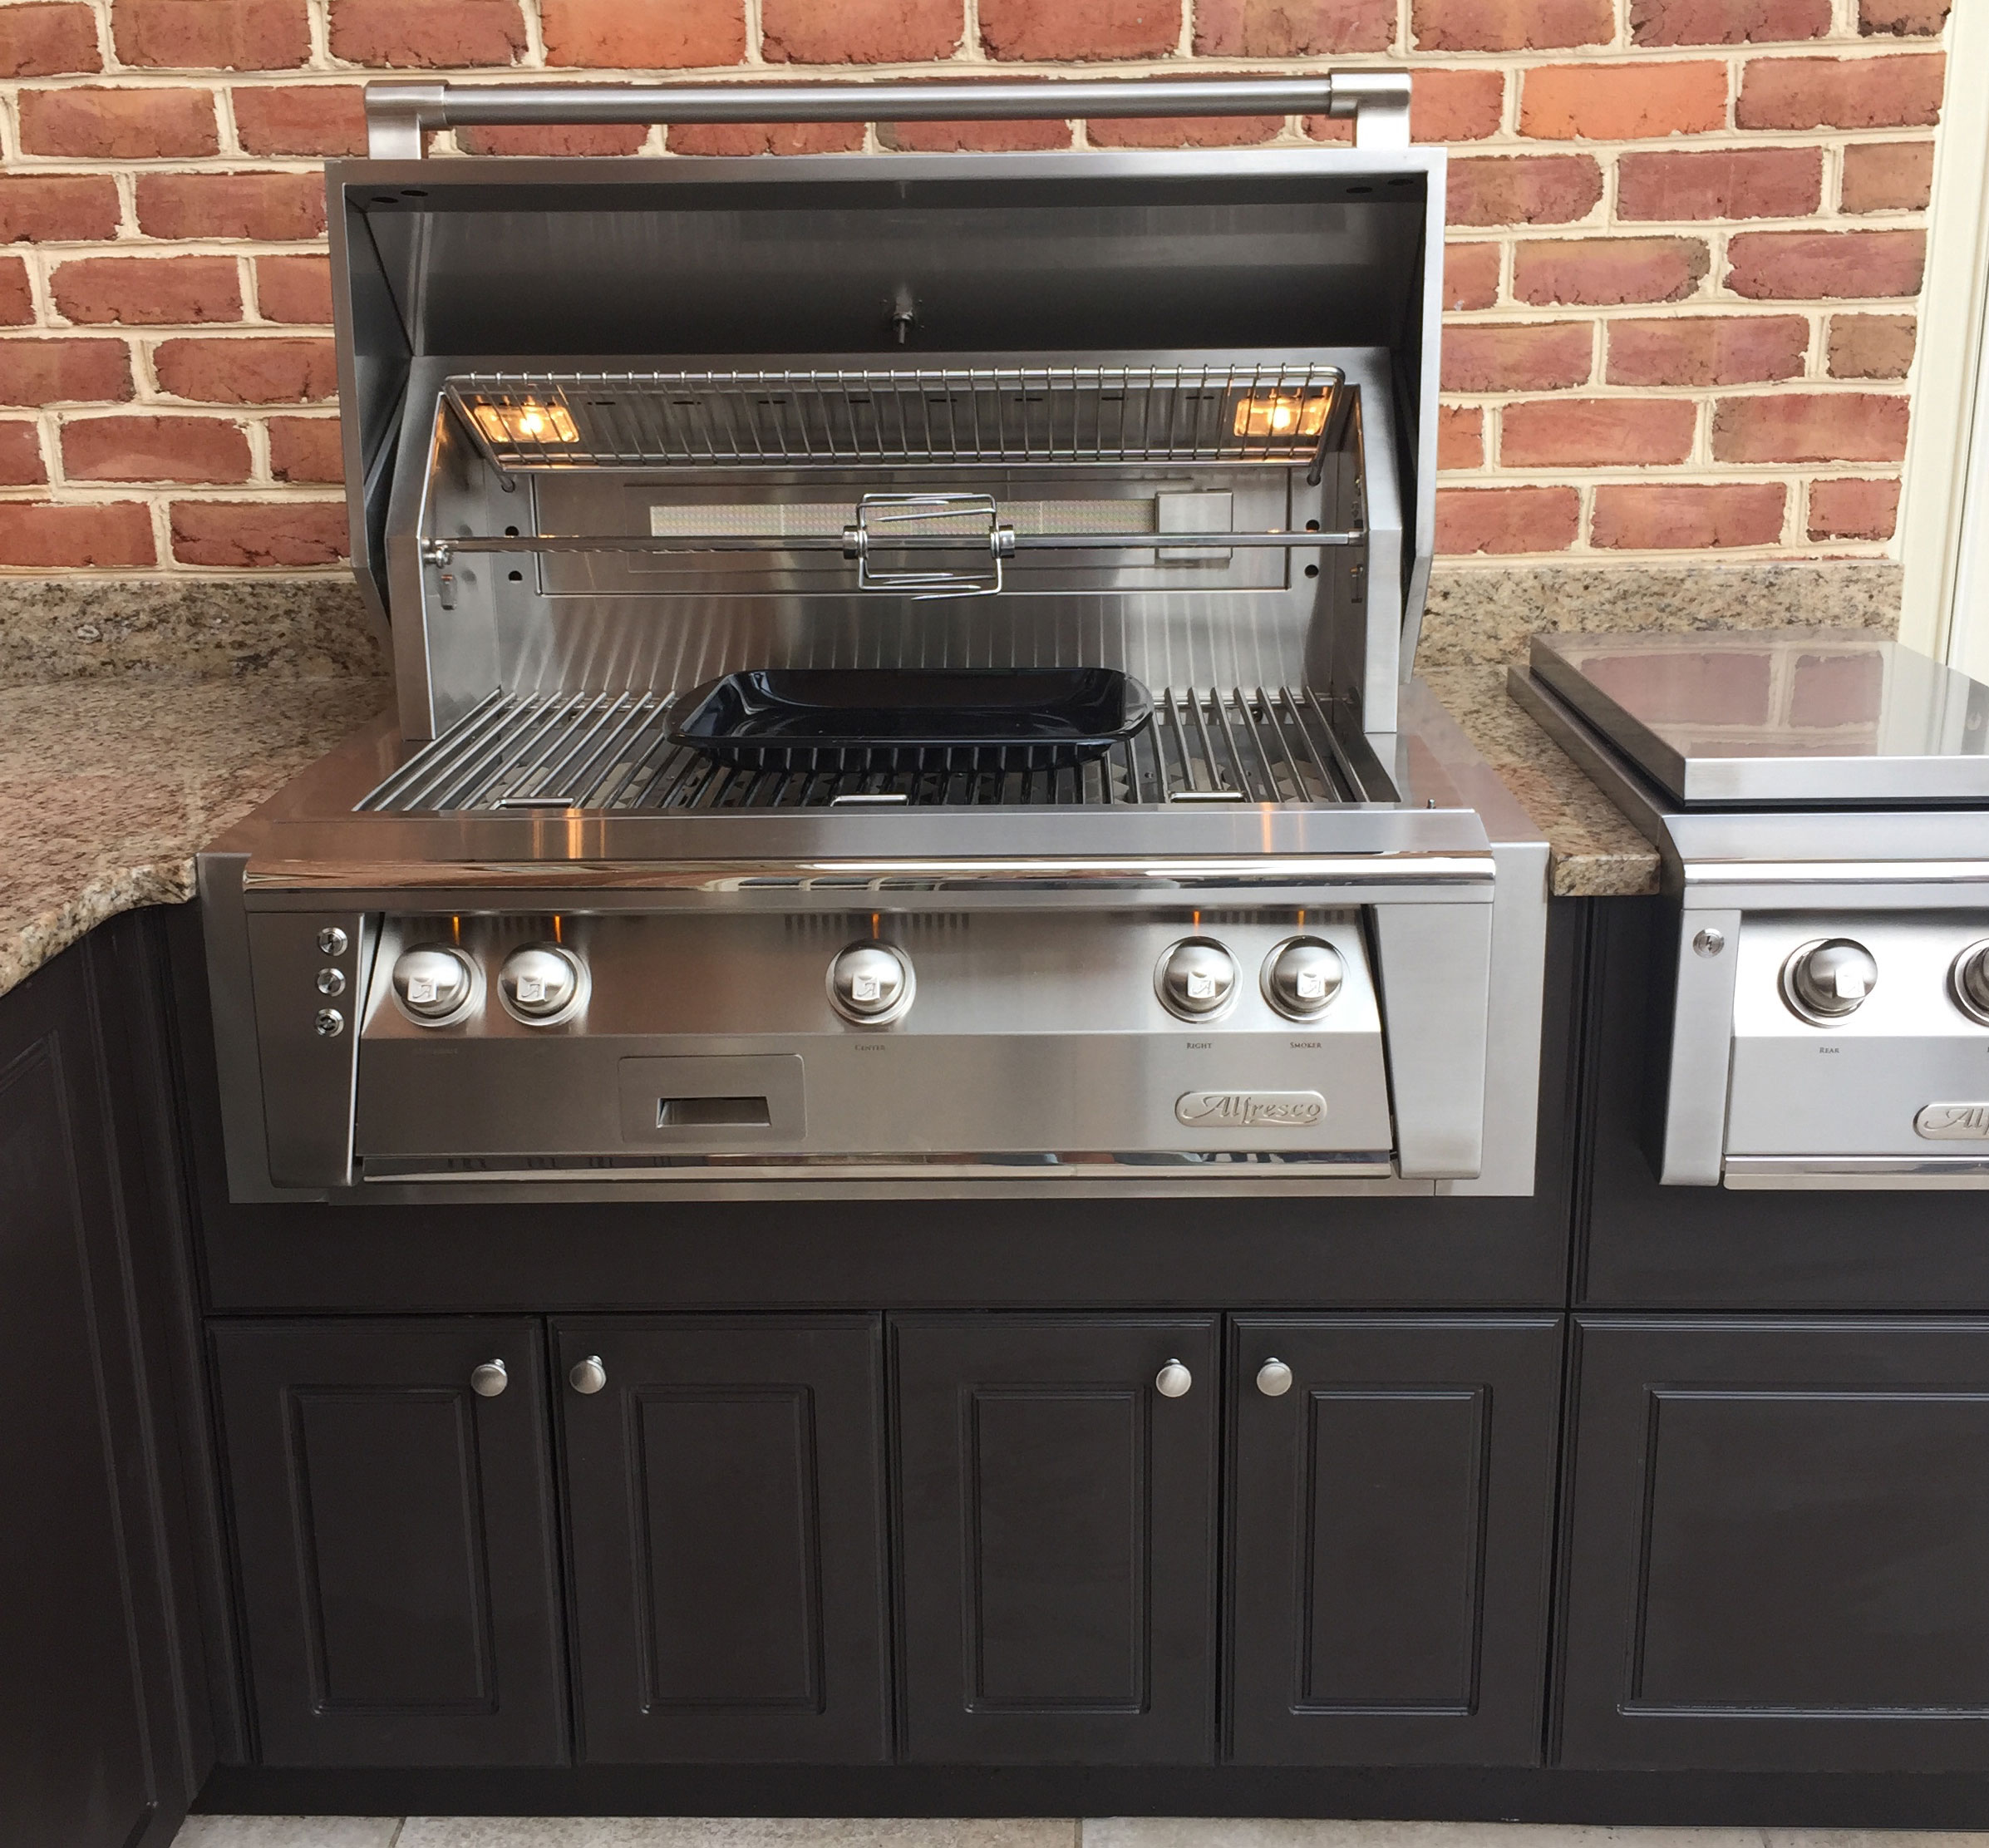 Alfresco Grill in Werever Cabinets